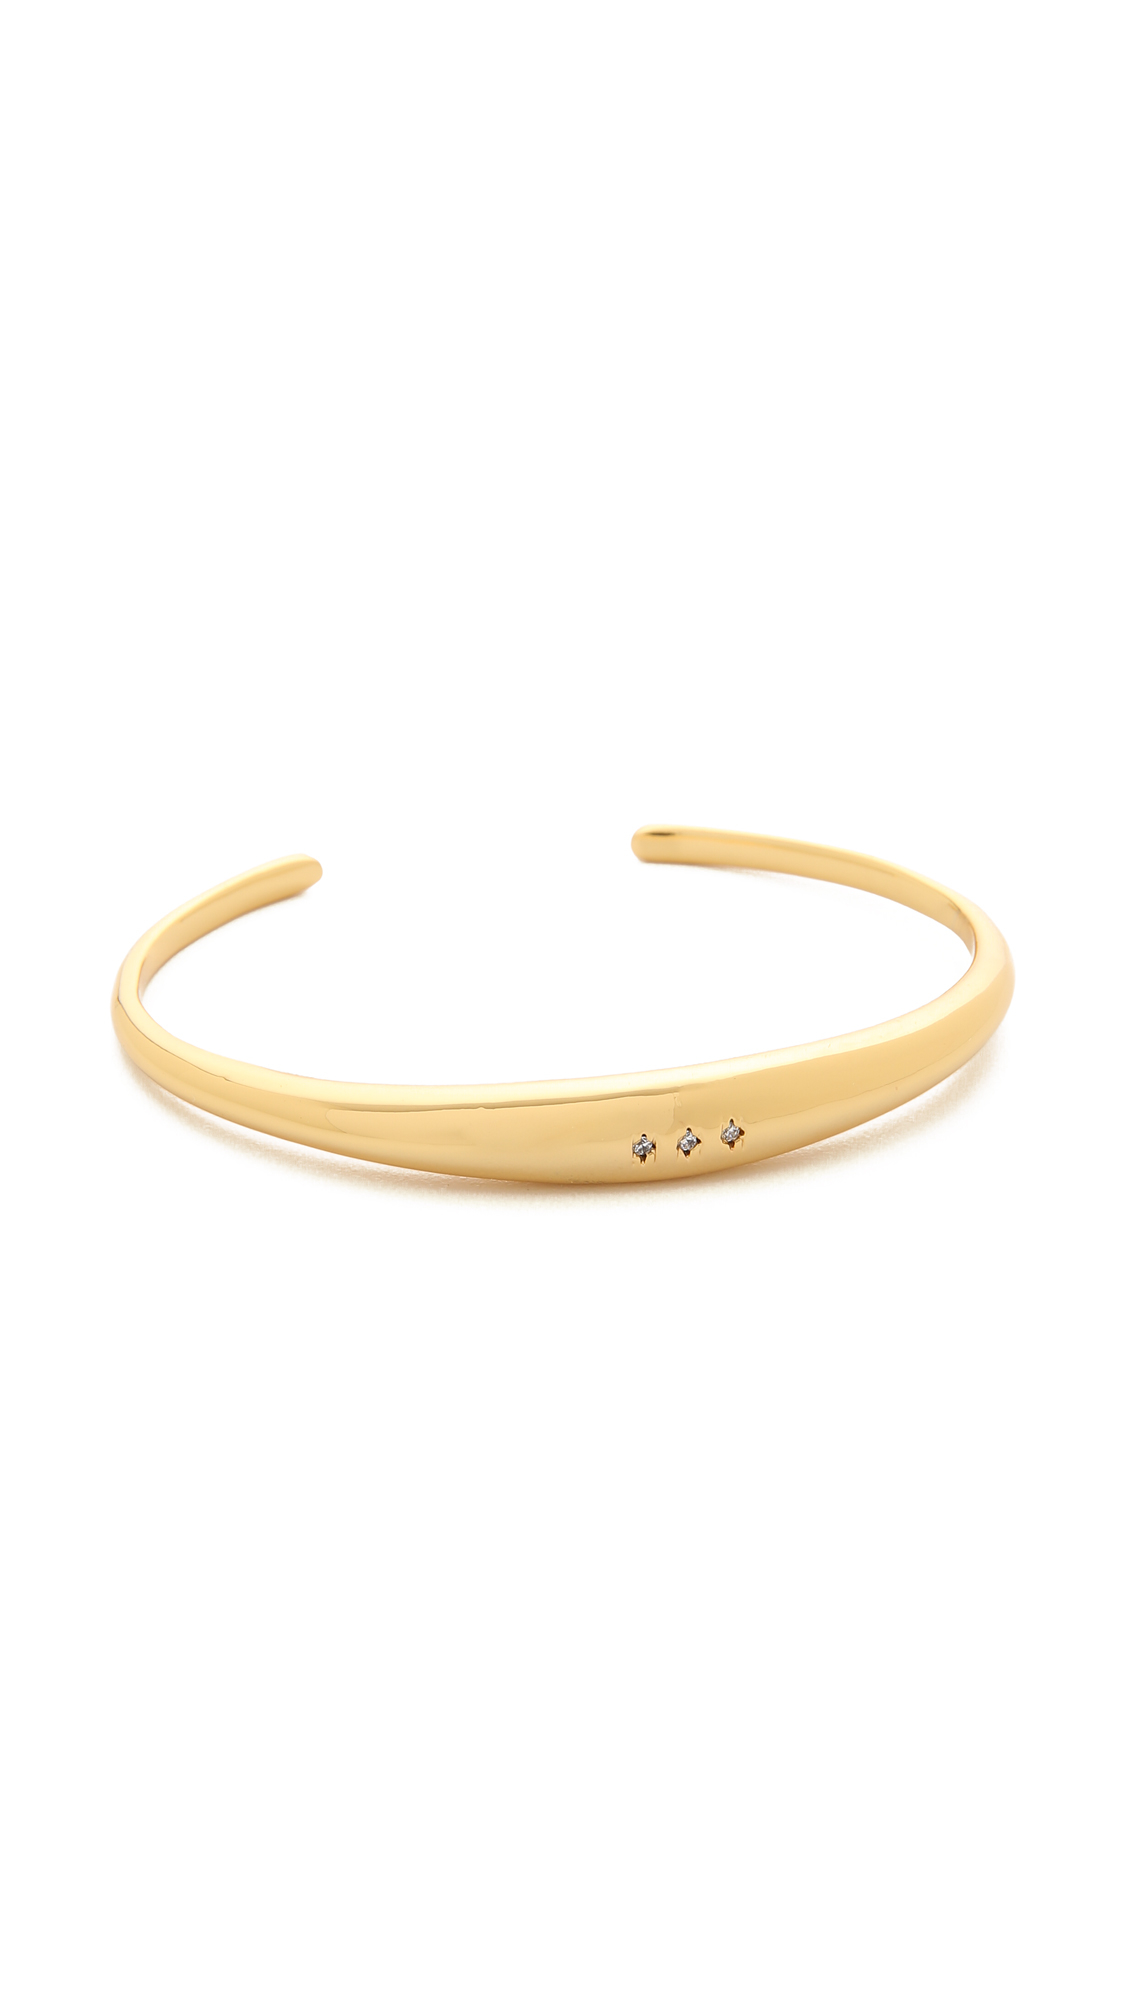 Lyst - Gorjana #wrappedup Treat Irri Cuff Bracelet - Gold in Metallic